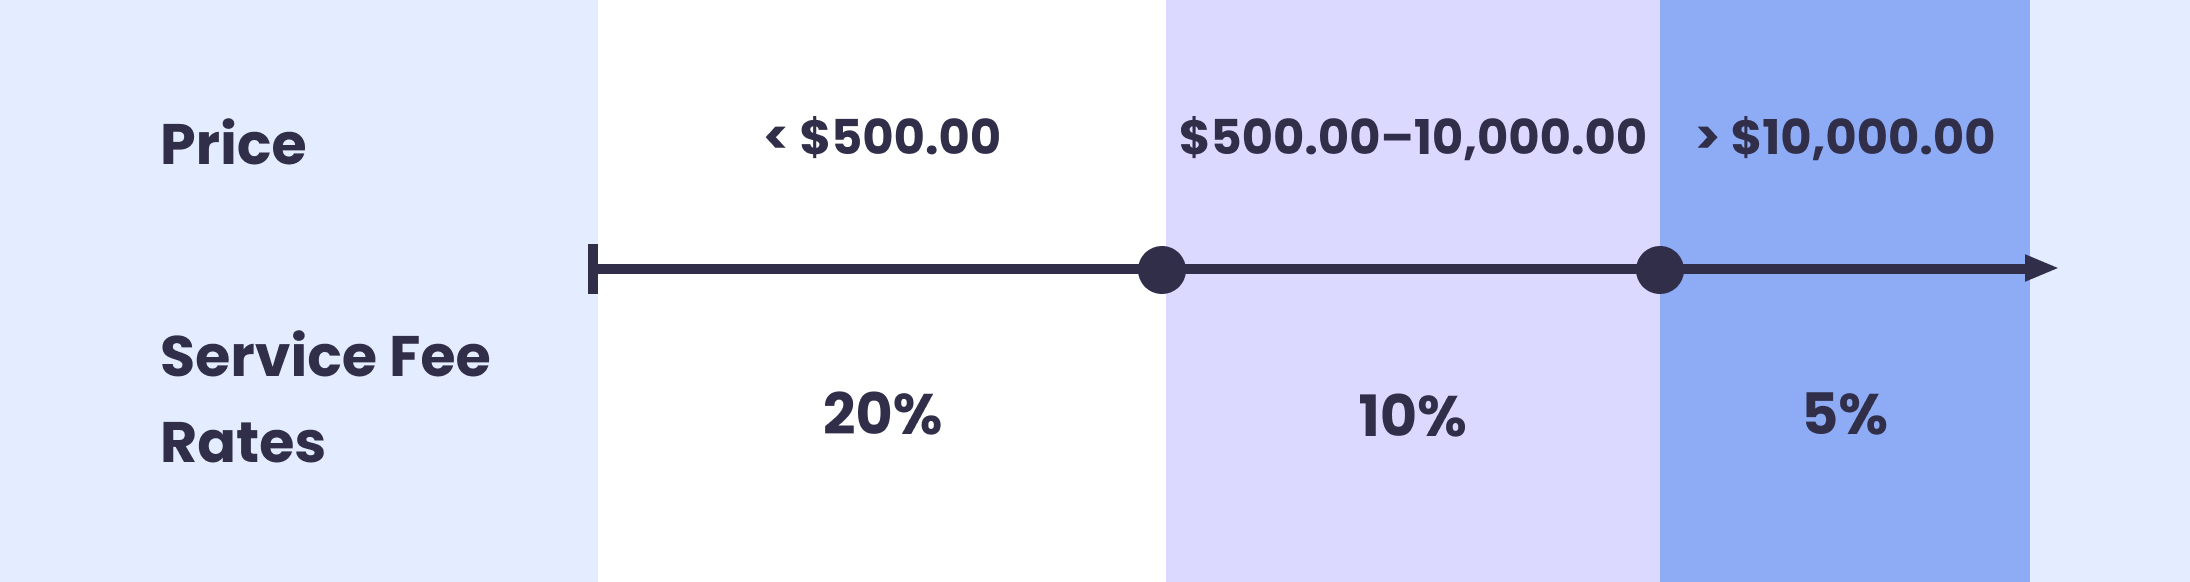 Upwork's rated fees and pricing infographic.